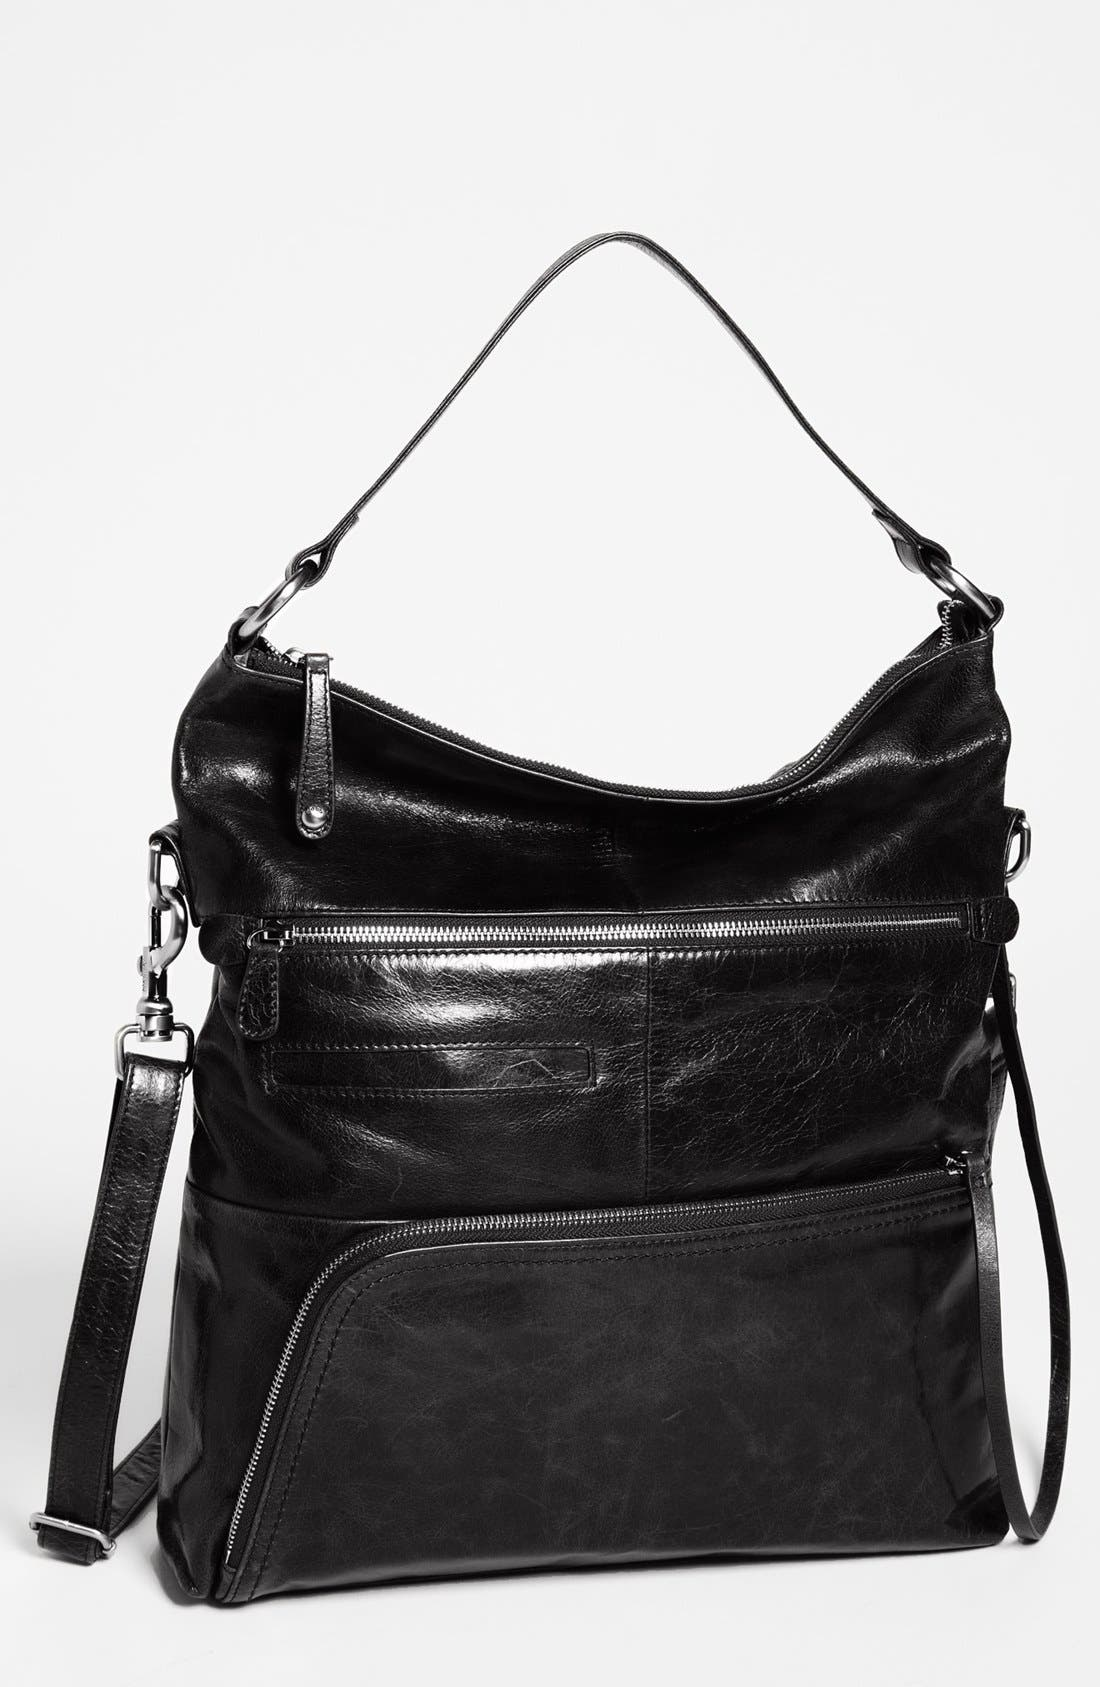 Alternate Image 1 Selected - Hobo 'Quinn' Leather Hobo